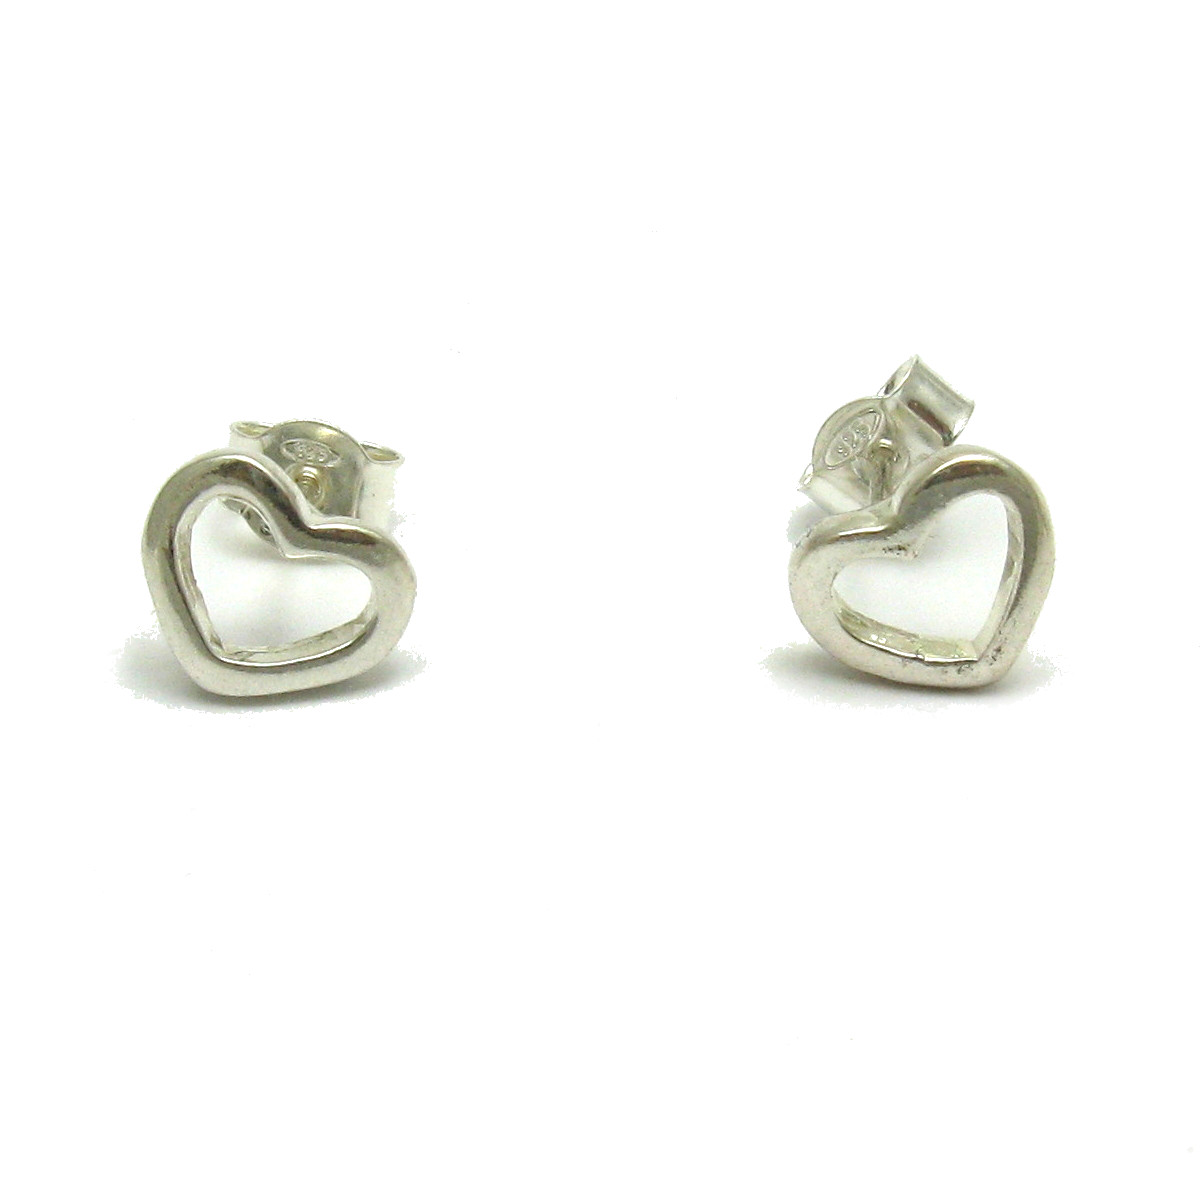 Silver earrings - E000641